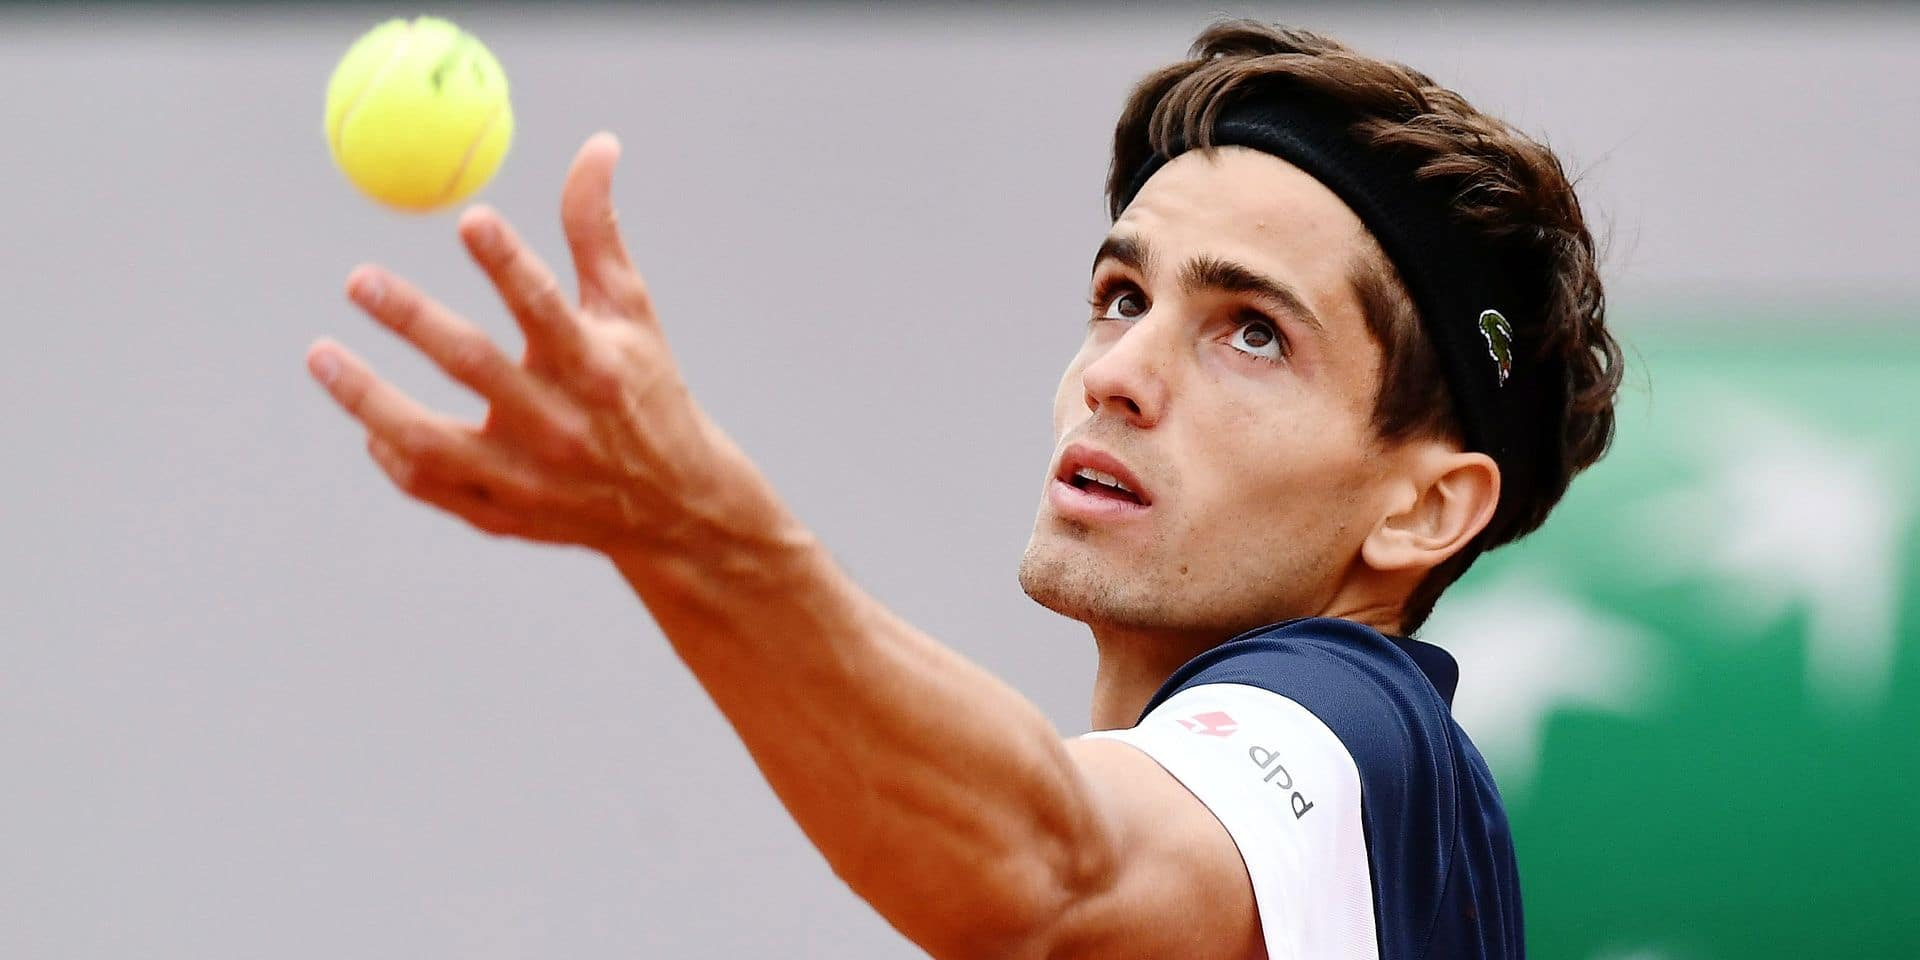 France's Pierre-Hugues Herbert eyes the ball as he serves to France's Benoit Paire during their men's singles second round match on day four of The Roland Garros 2019 French Open tennis tournament in Paris on May 29, 2019. (Photo by Philippe LOPEZ / AFP)